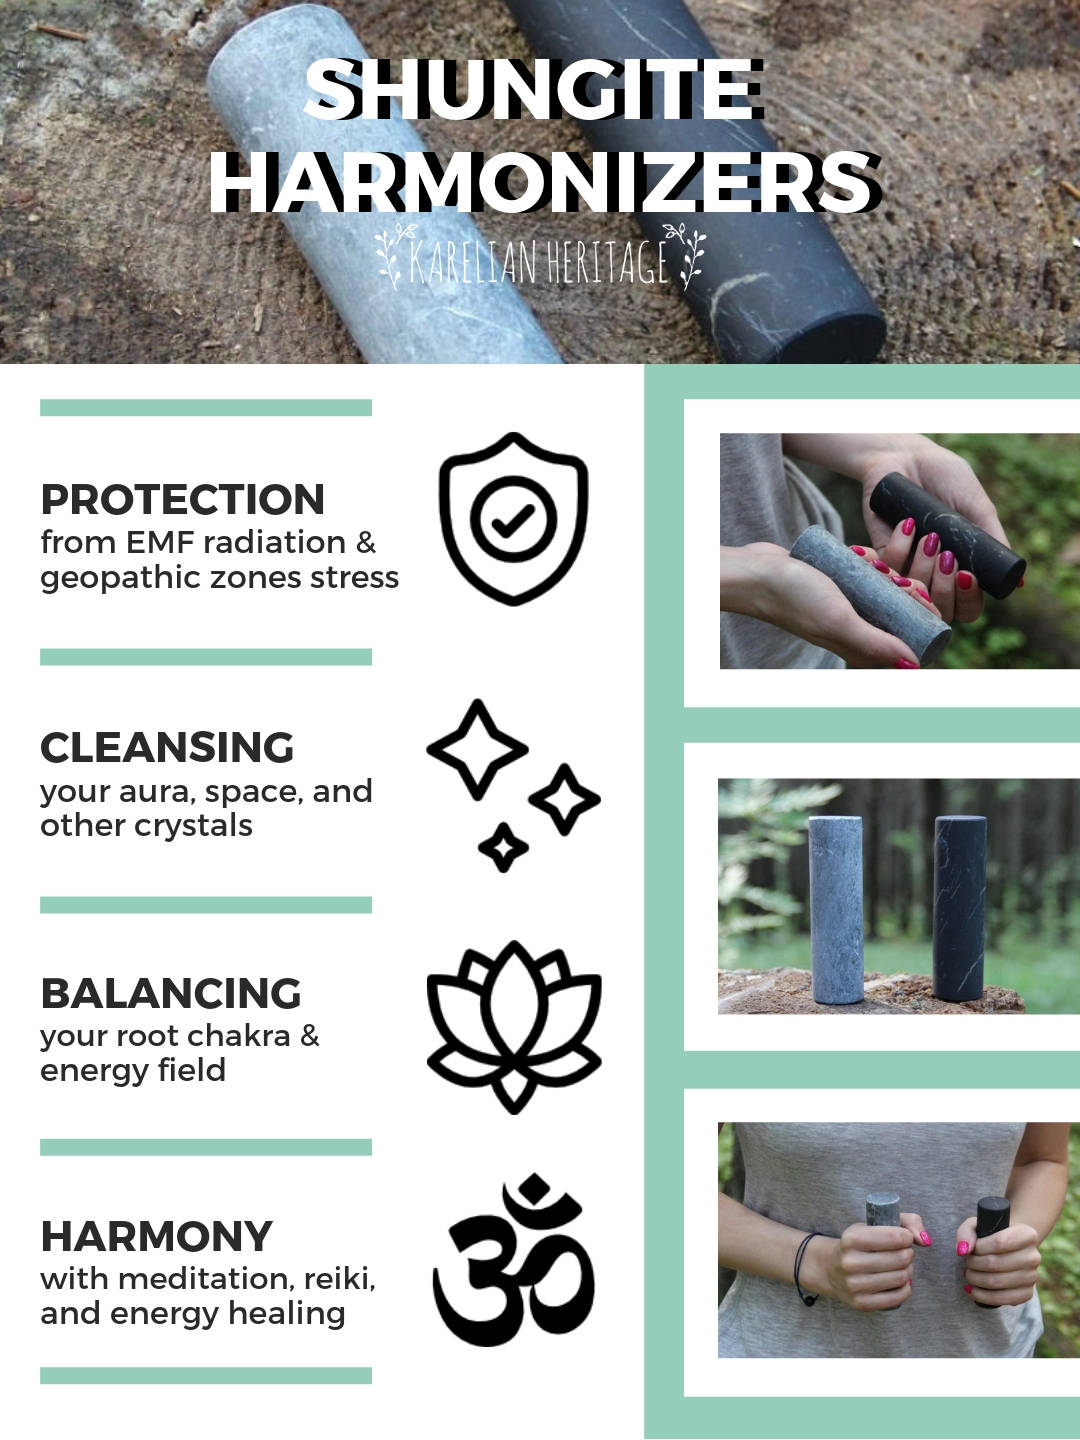 shungite-harmonizers-for-meditation